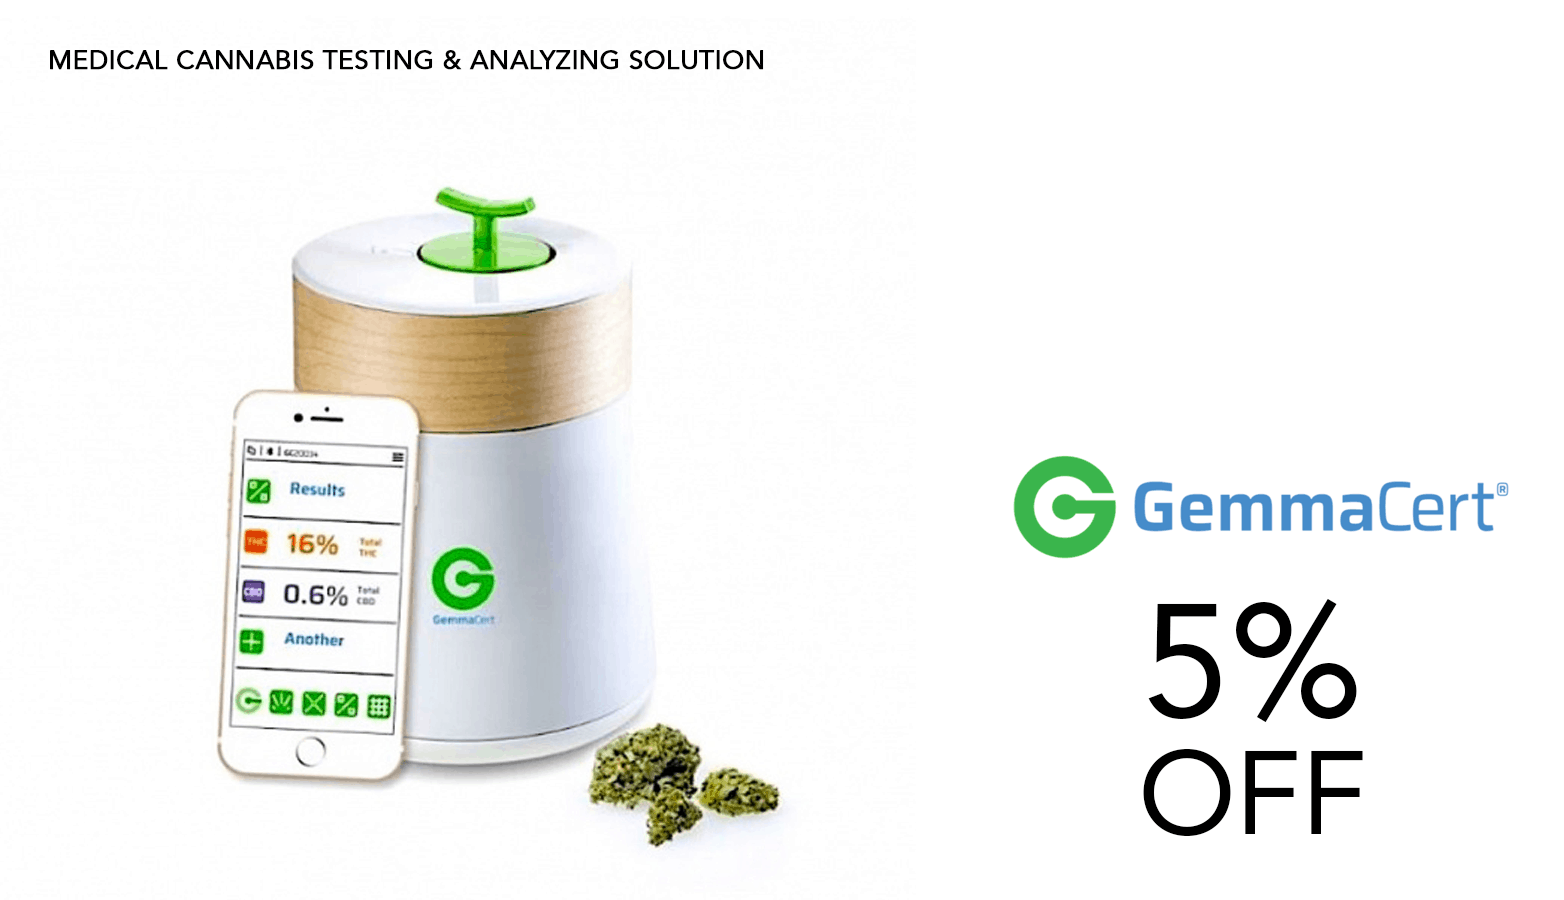 GemmaCert Cannabis Potency Testing Device Coupon Code Offer